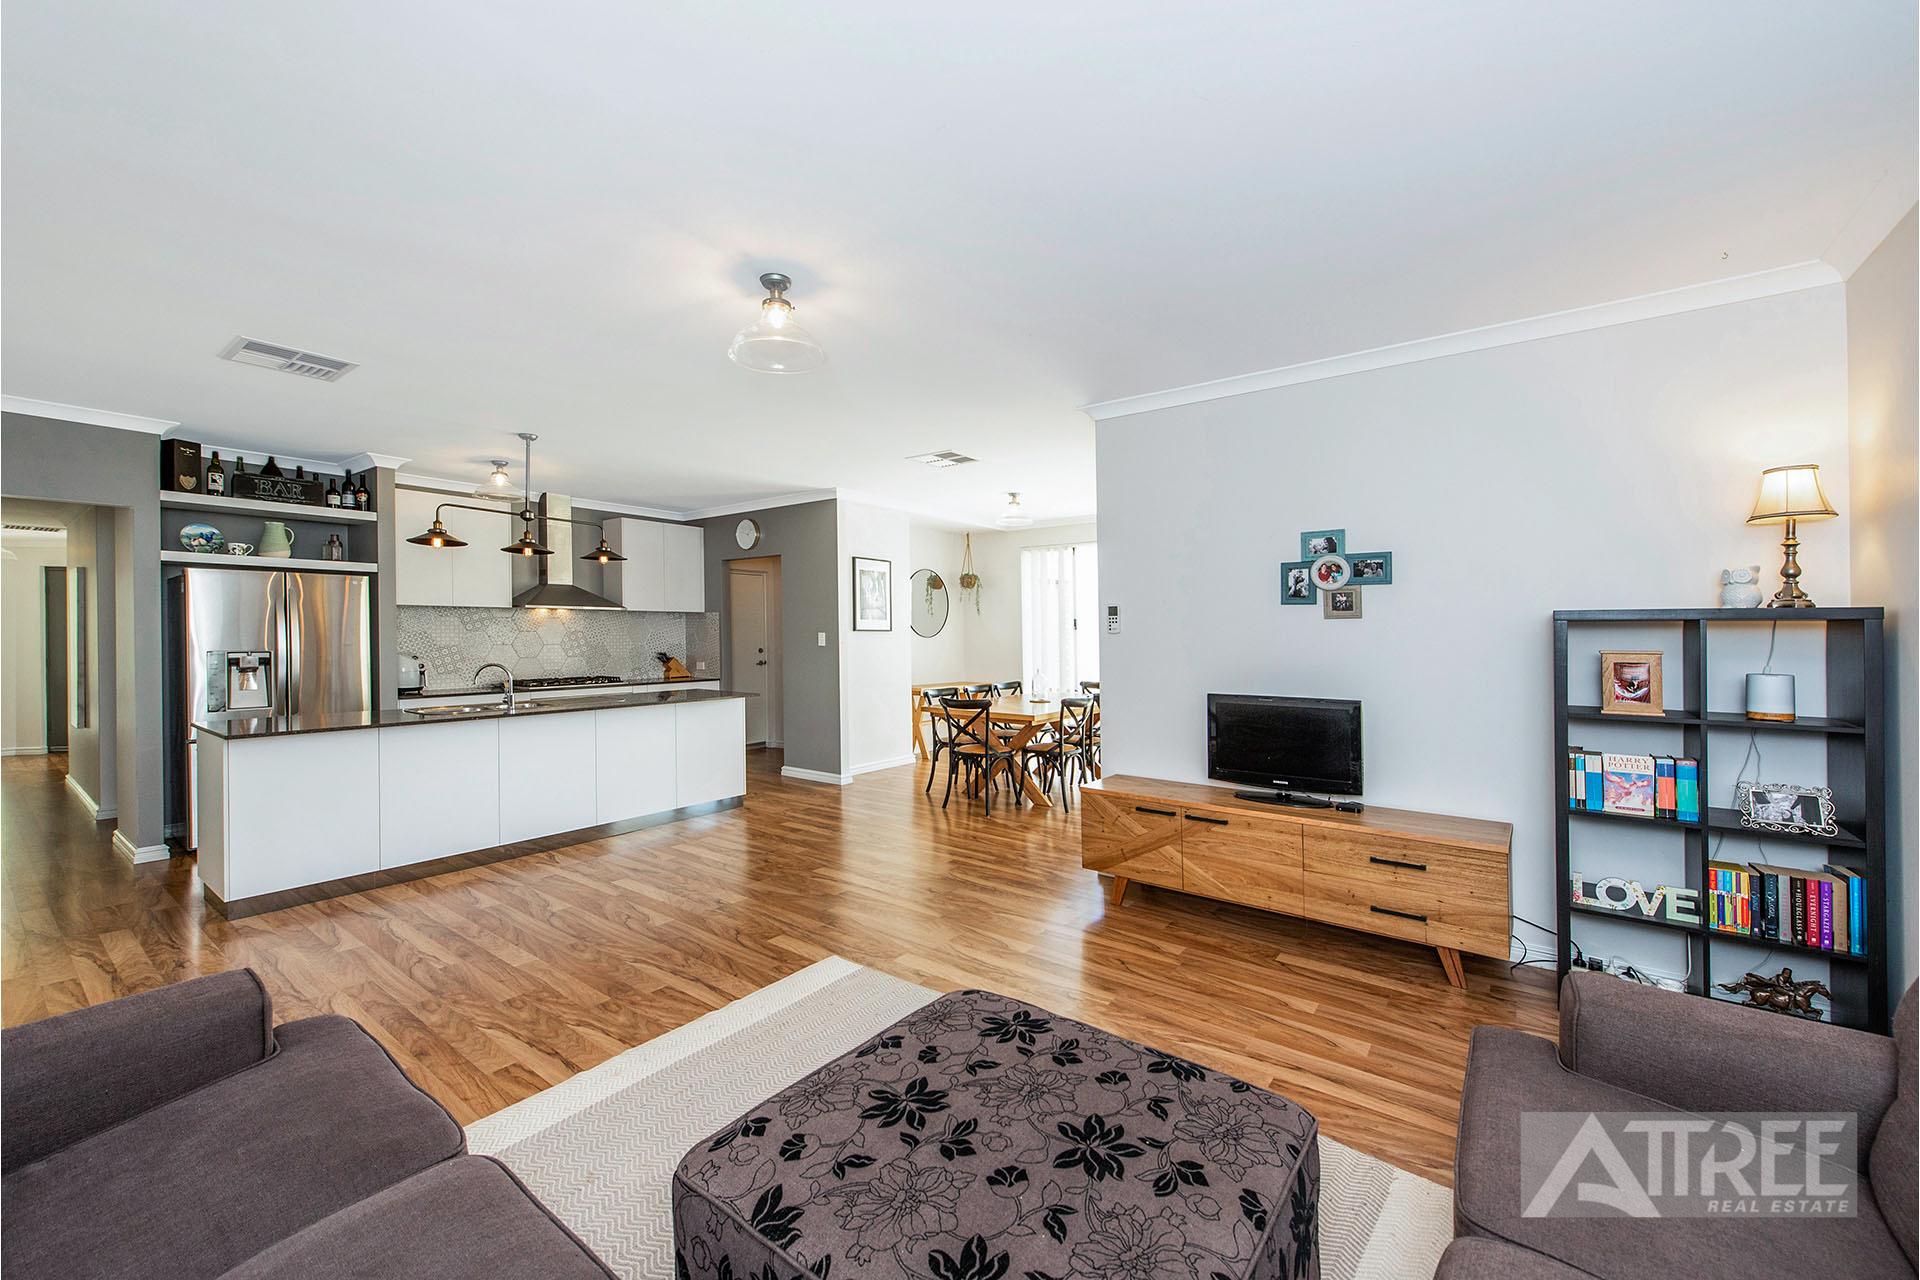 Property for sale in SEVILLE GROVE, 15 Dunn Close : Attree Real Estate